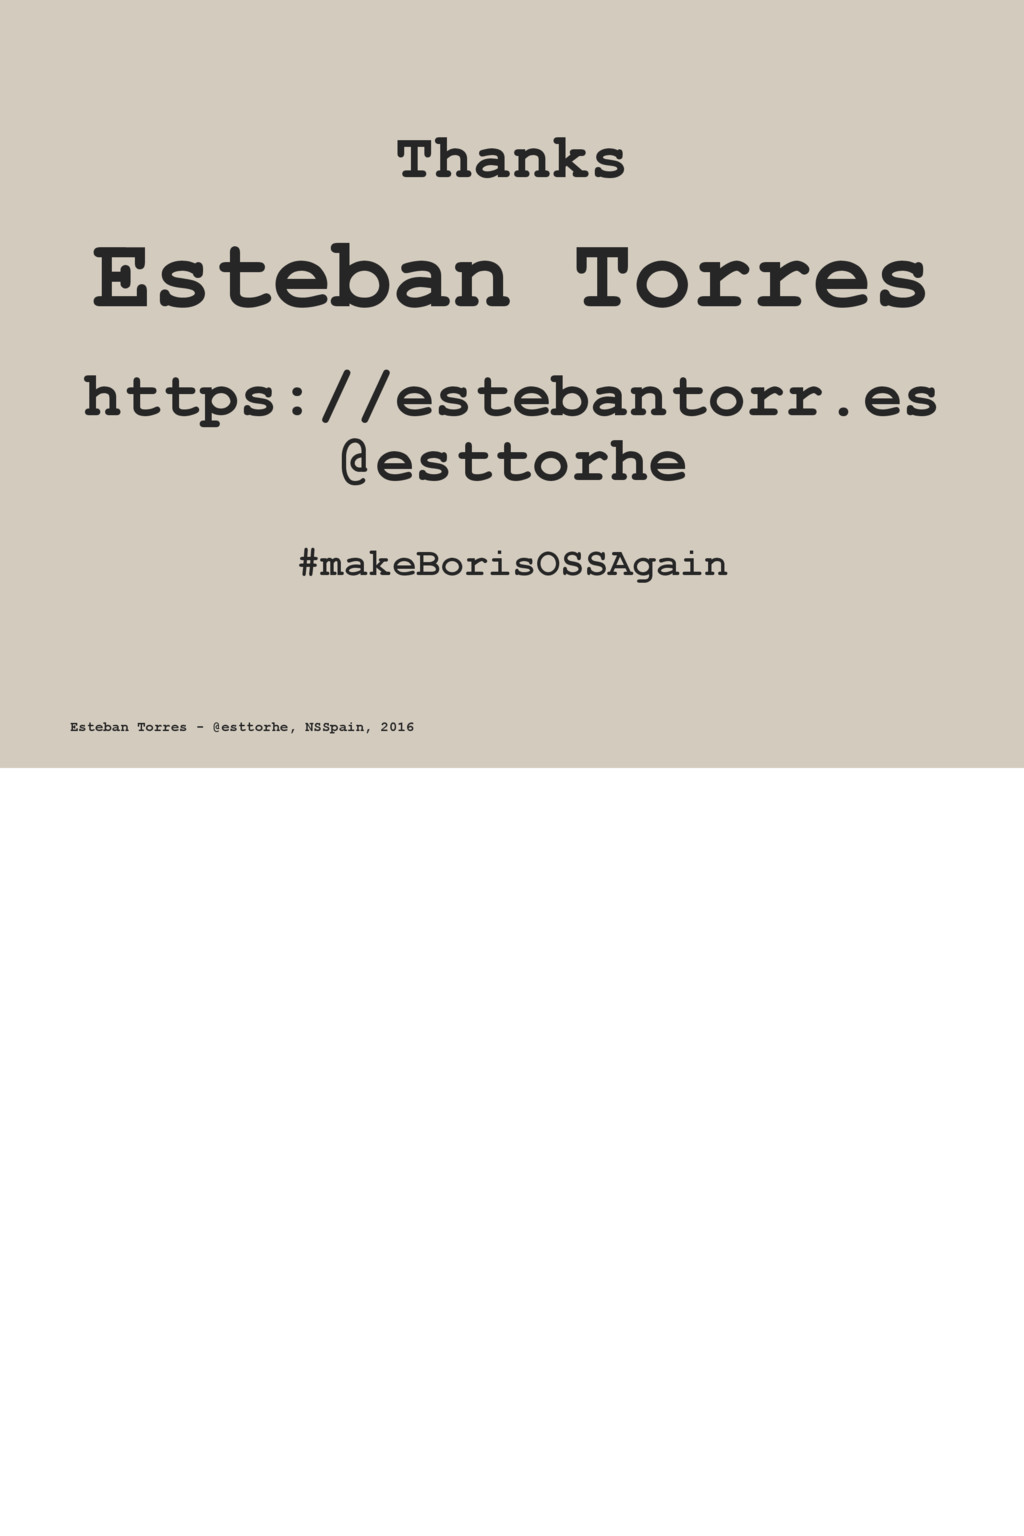 Thanks Esteban Torres https://estebantorr.es @e...